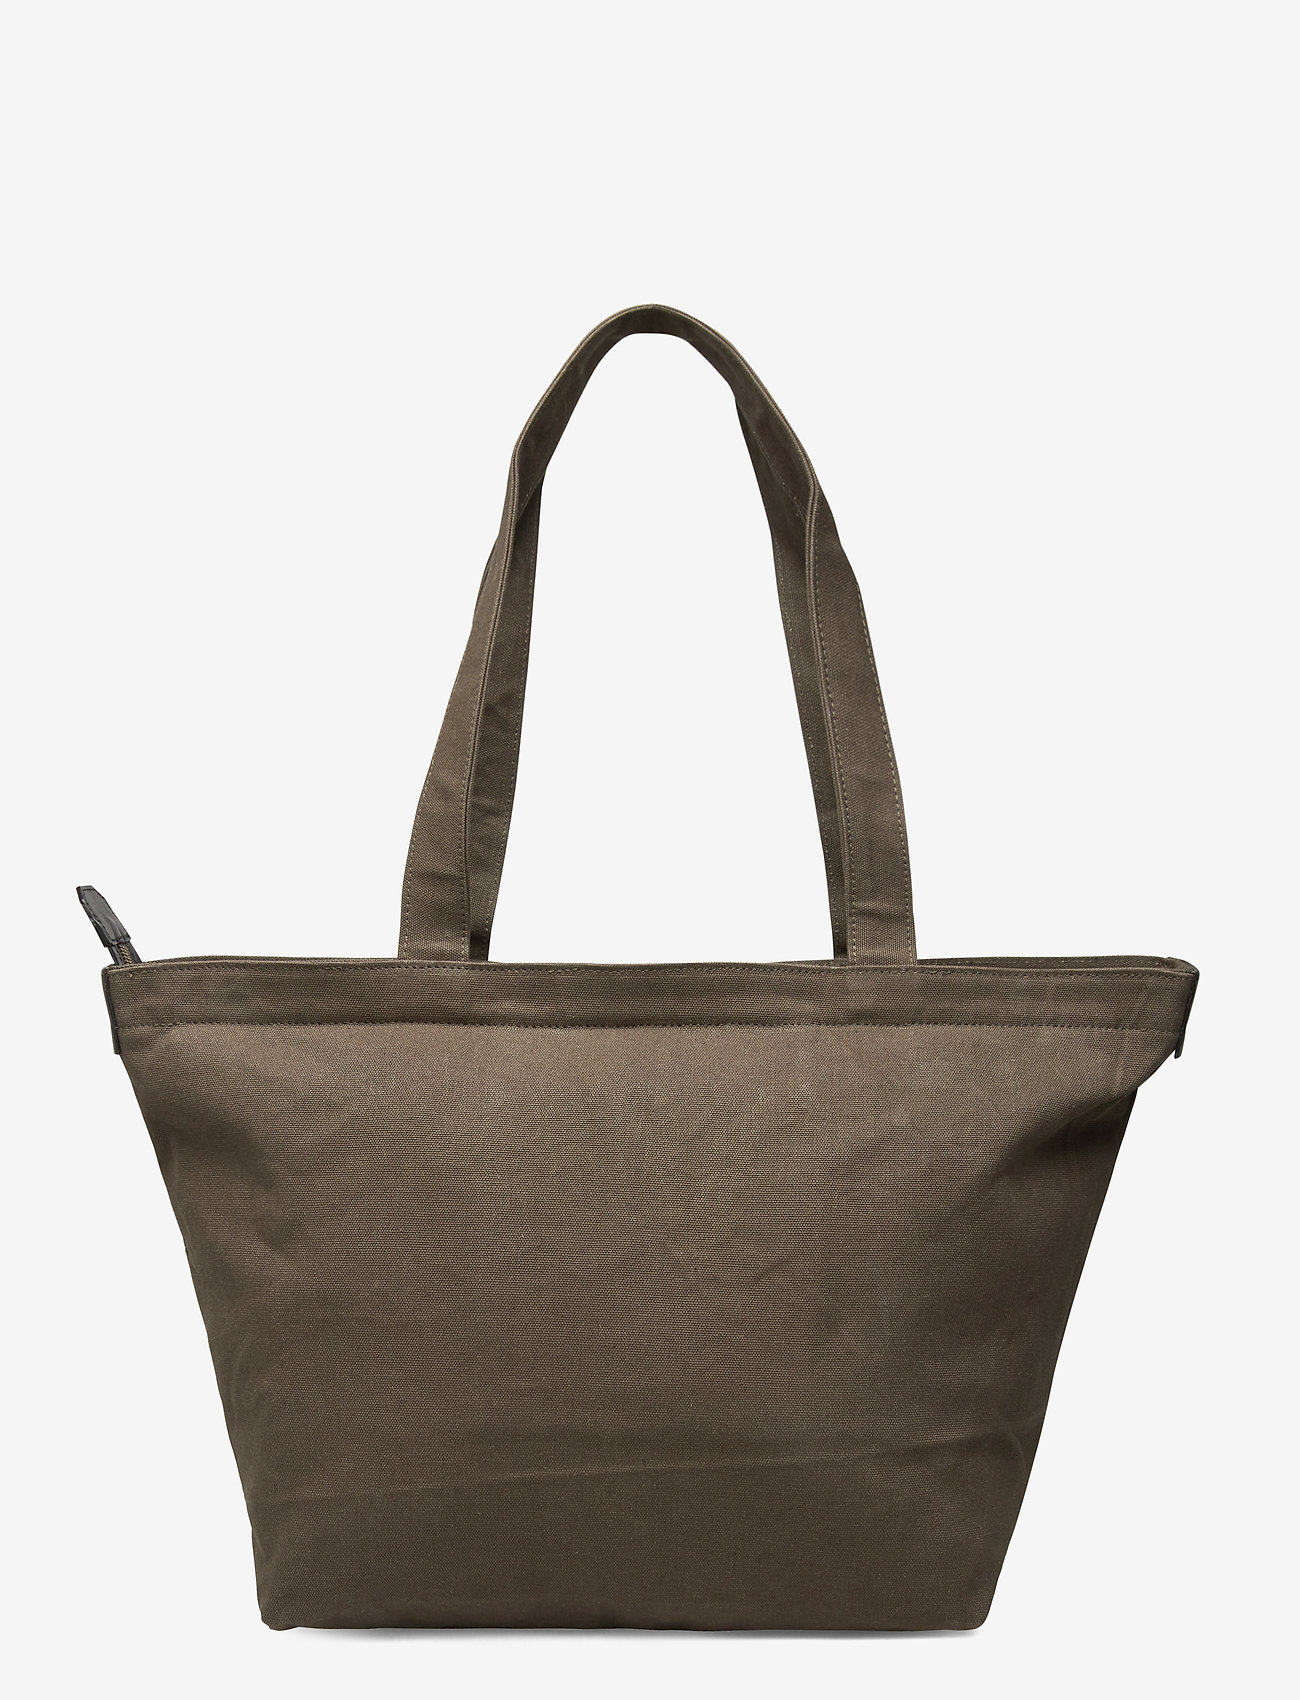 Fjord Mini Shopper (Olive) - Royal RepubliQ k6dLY4